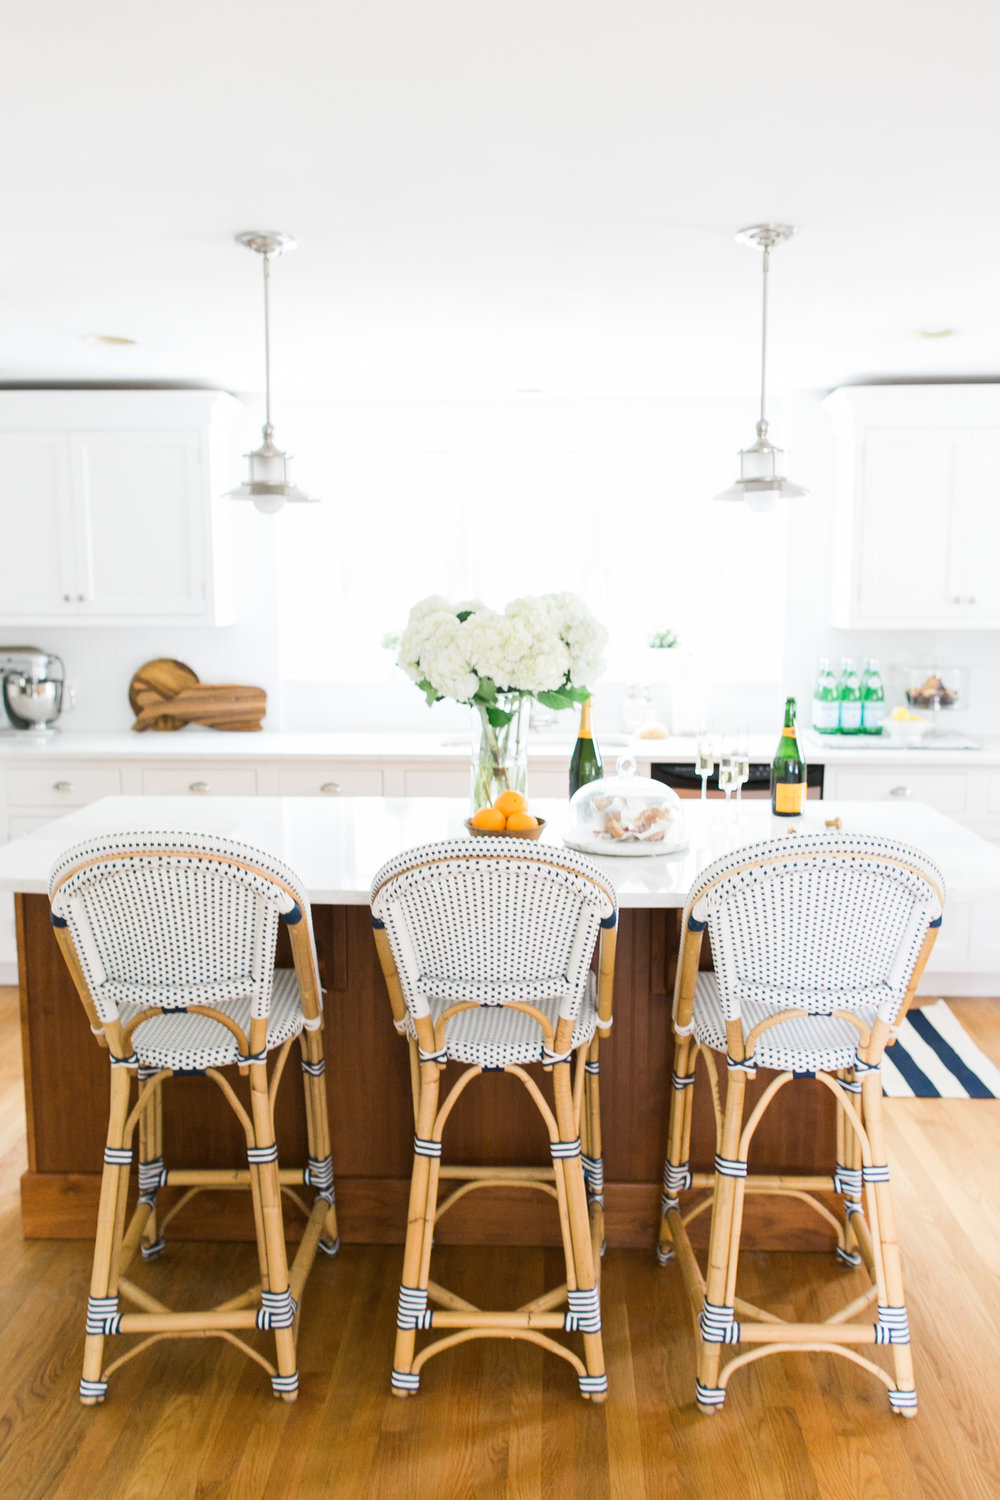 I hate our kitchen pendants. — Abby Capalbo